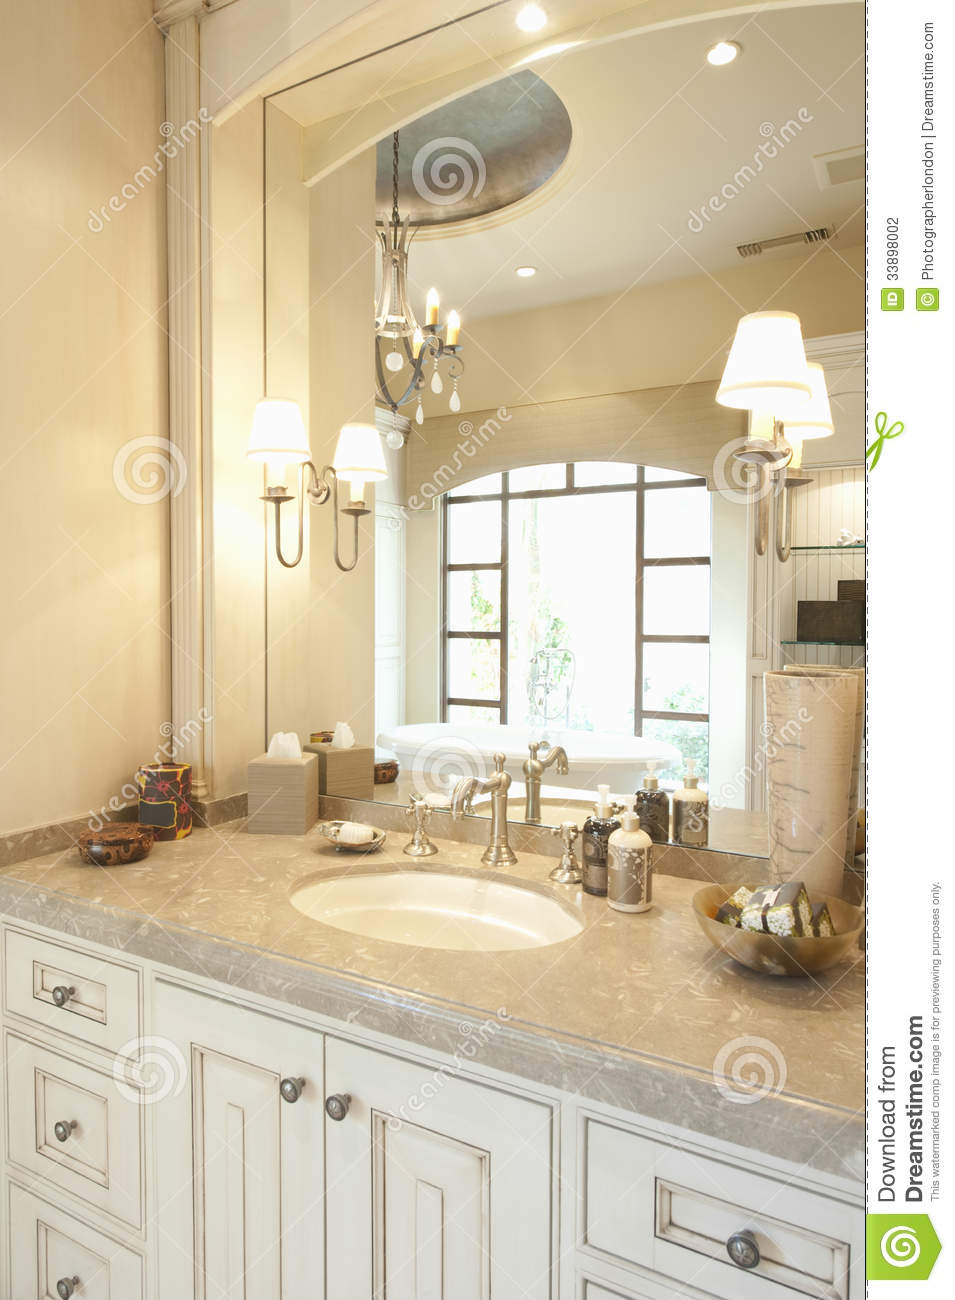 Marble topped cream bathroom with window reflected in mirror